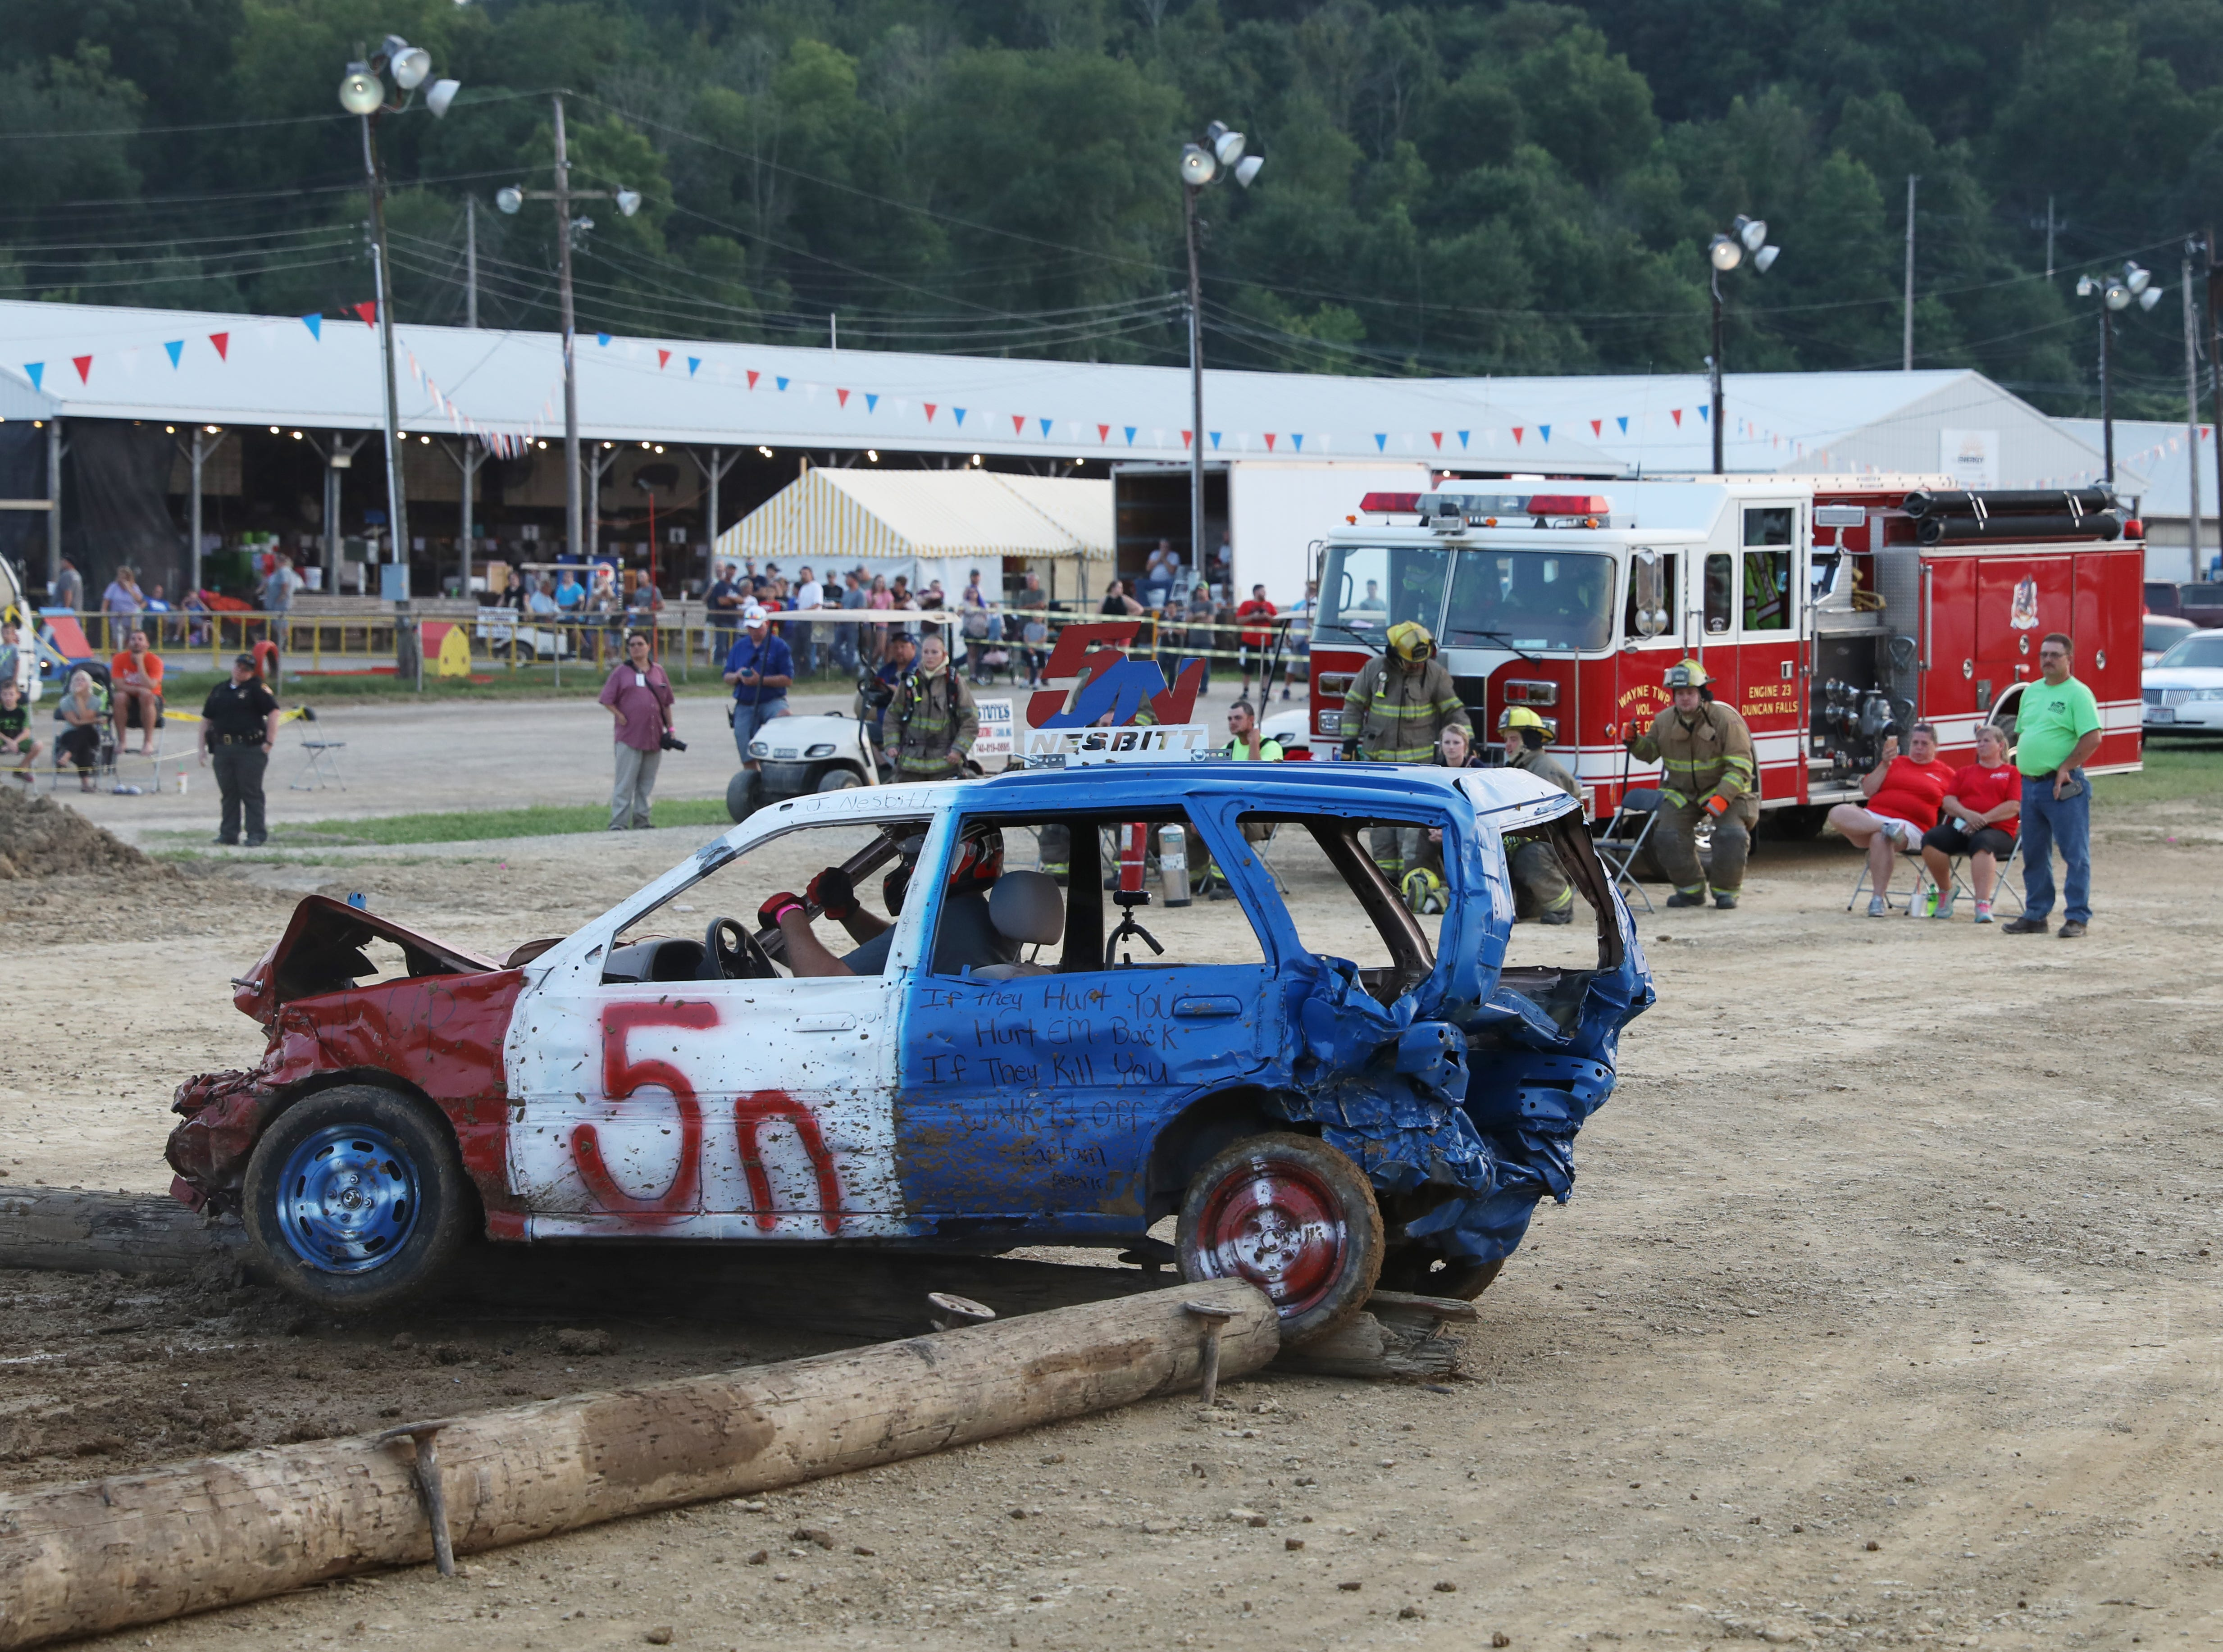 Ronald Miller's 2002 Chevy gets hung up during the Sarge and Sons Demolition Derby at the Muskingum County Fair on Tuesday.